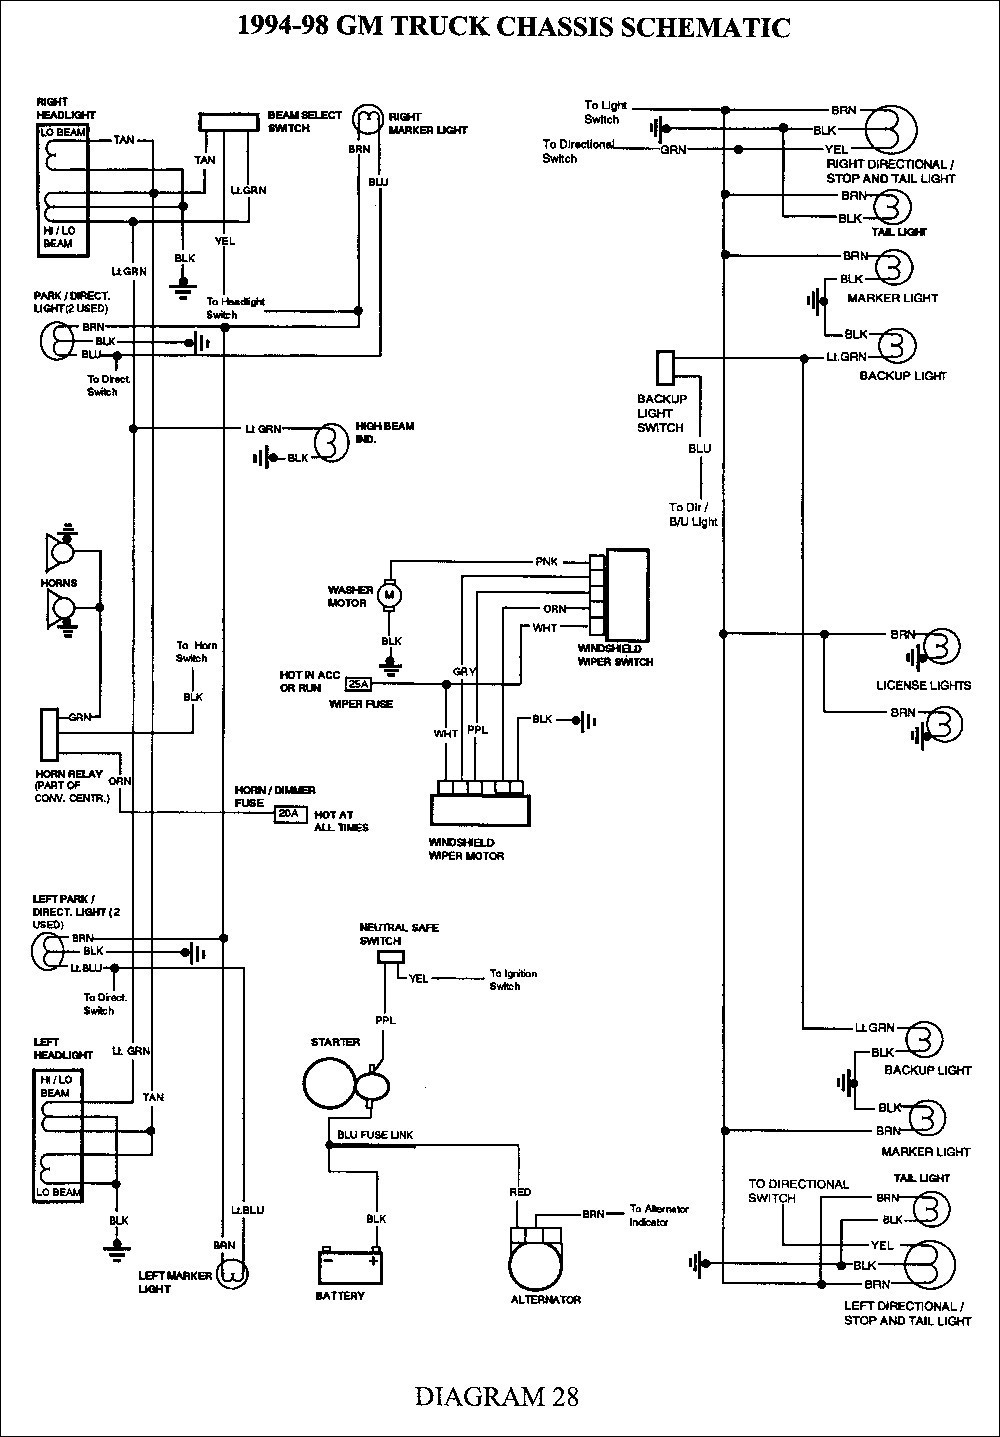 2005 Silverado Wiring Diagram - Wiring Diagrams Thumbs - 05 Silverado Trailer Wiring Diagram